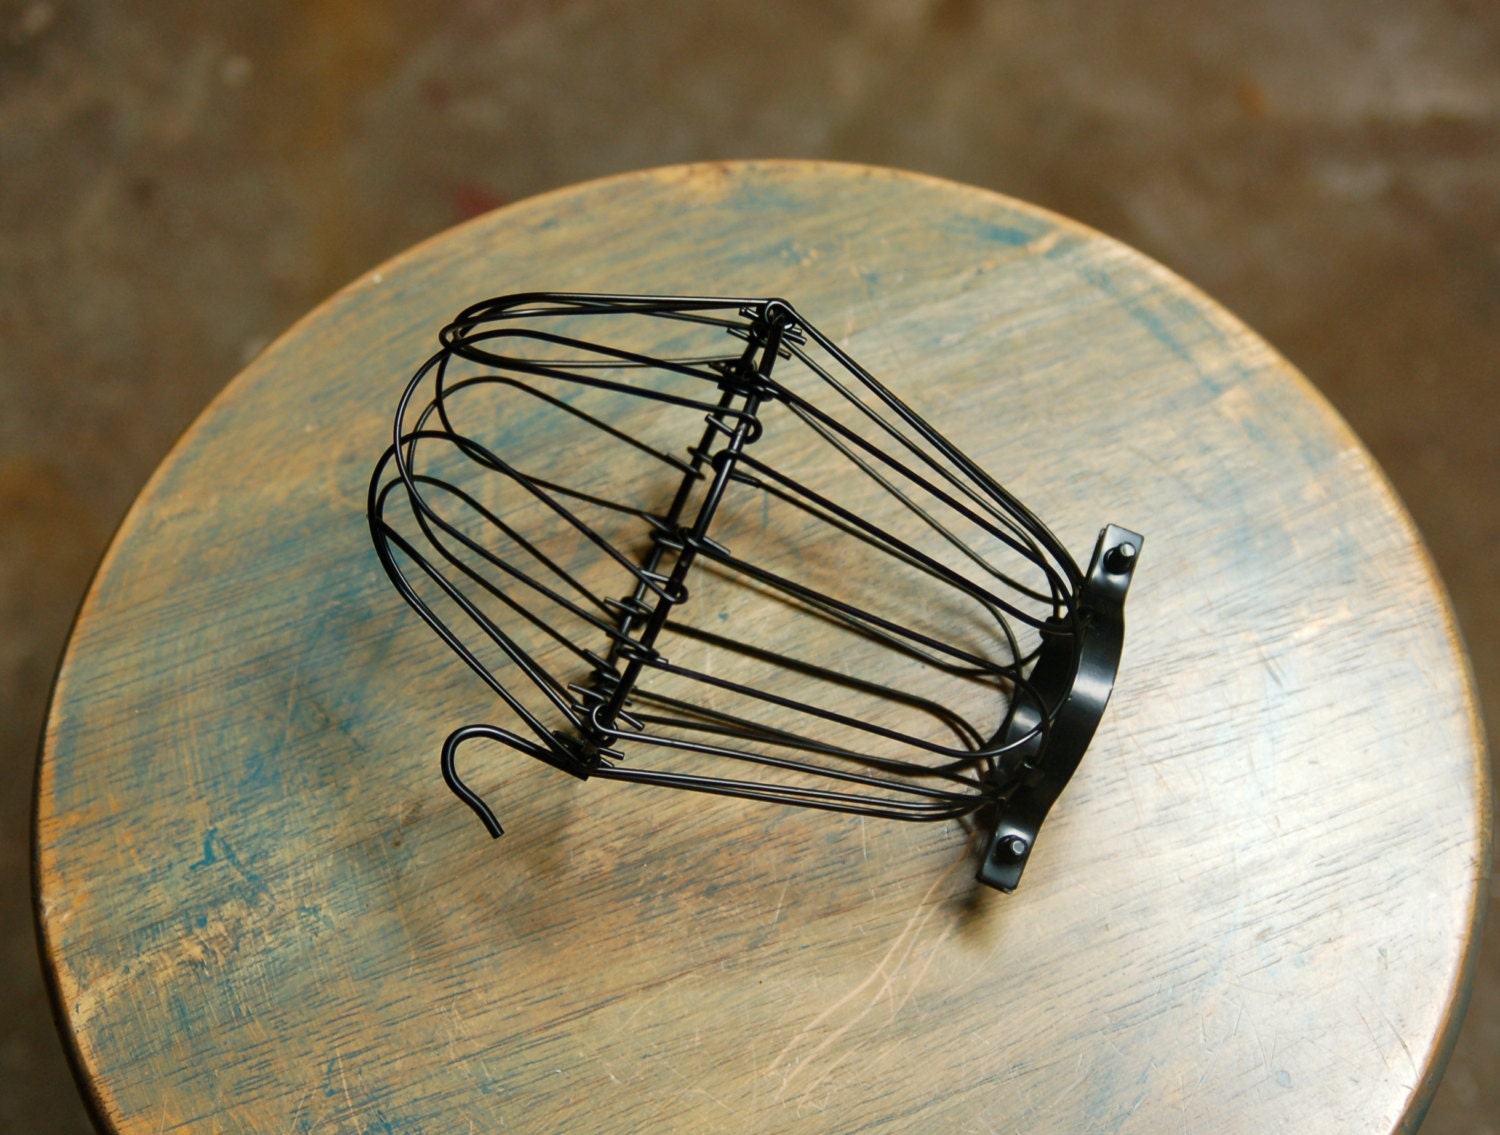 black wire bulb cage clamp on lamp guard for vintage trouble. Black Bedroom Furniture Sets. Home Design Ideas